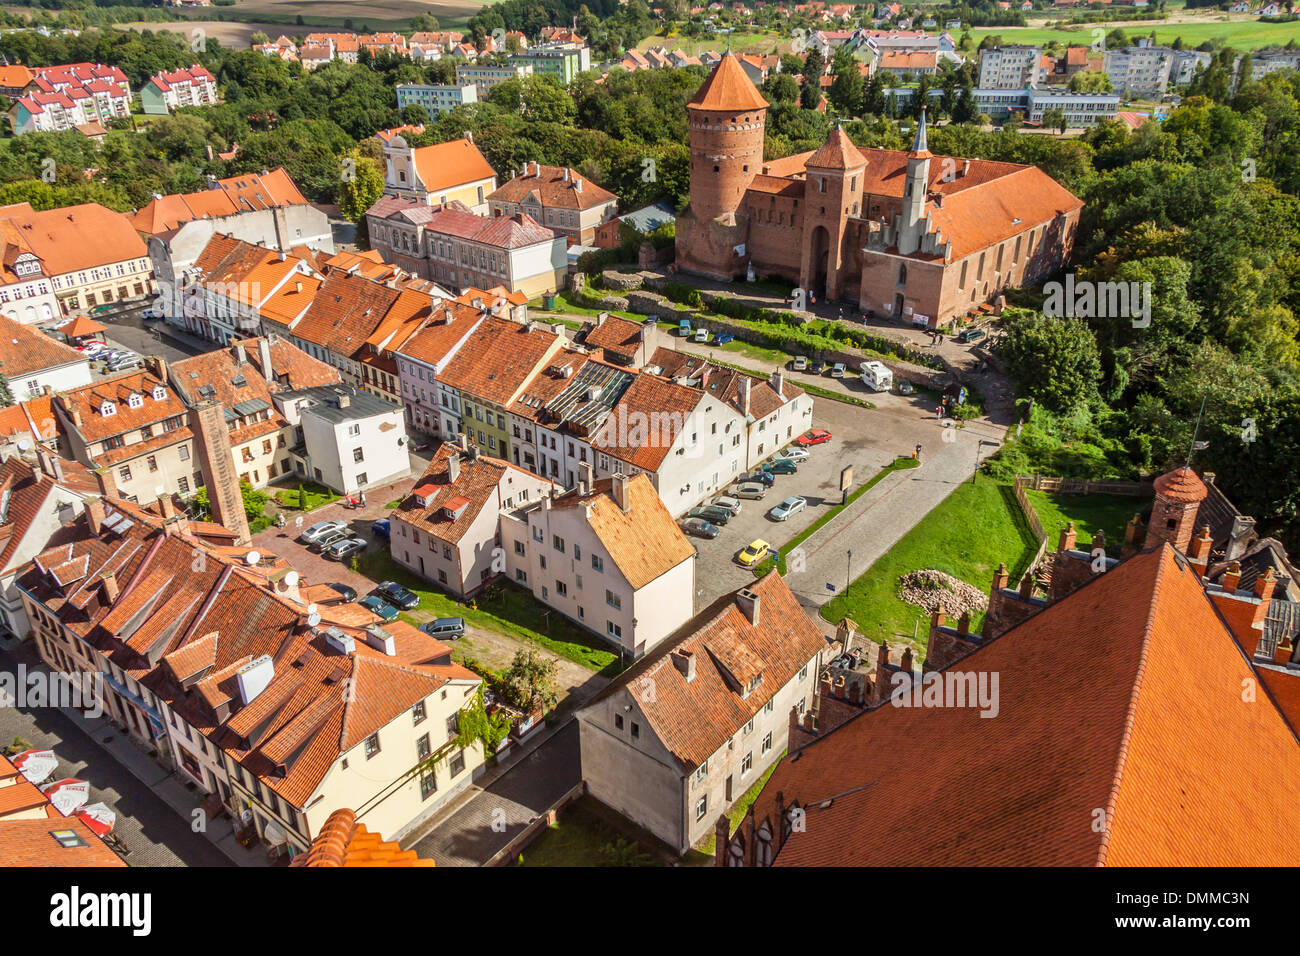 Old castle and Reszel Town - aerial view. Poland. Stock Photo